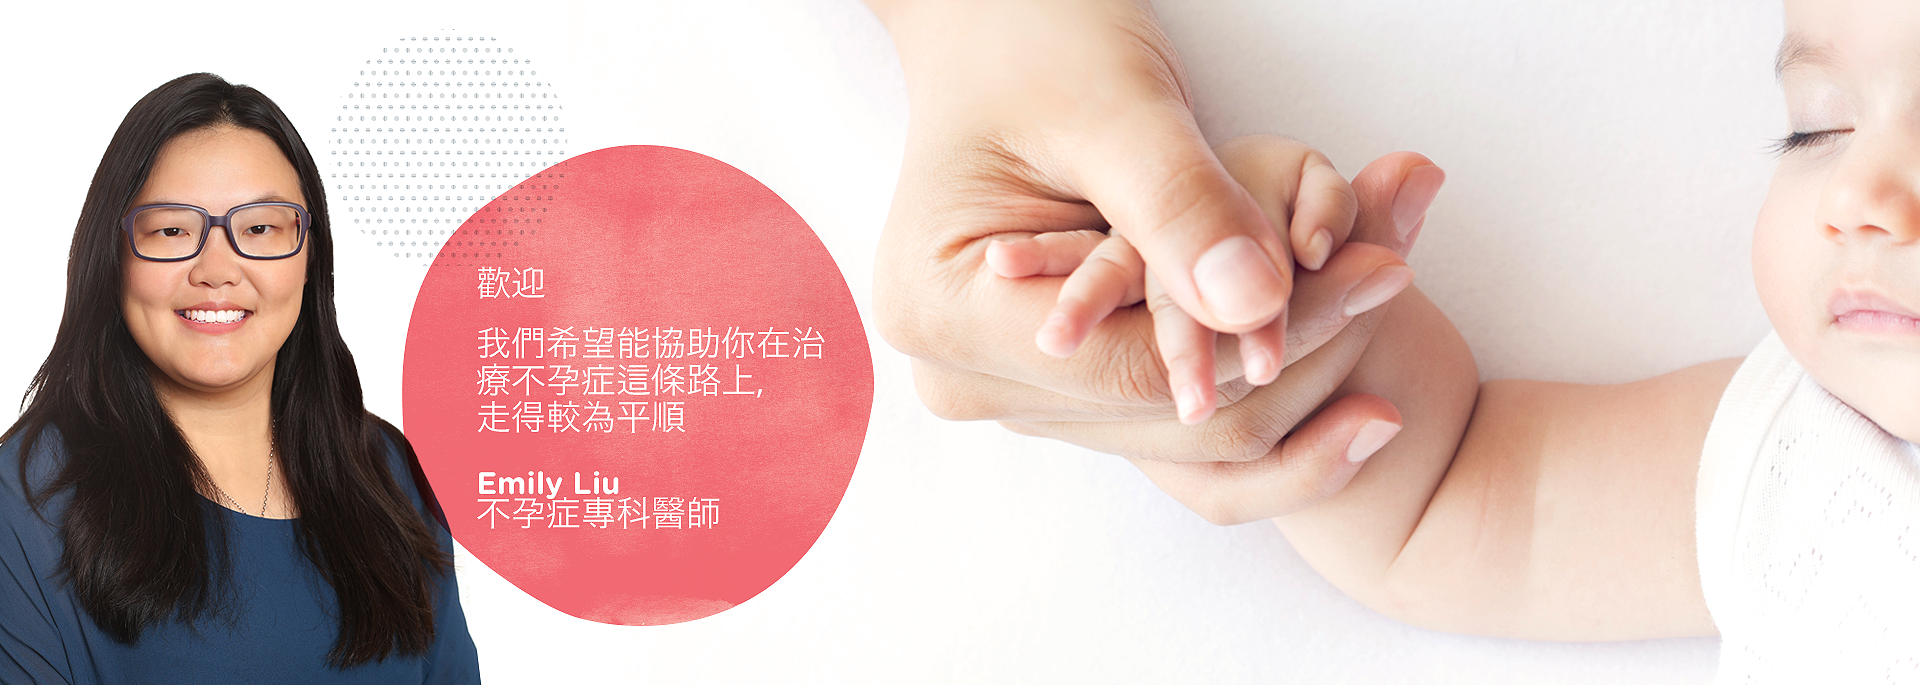 Fertility Specialists - Chinese